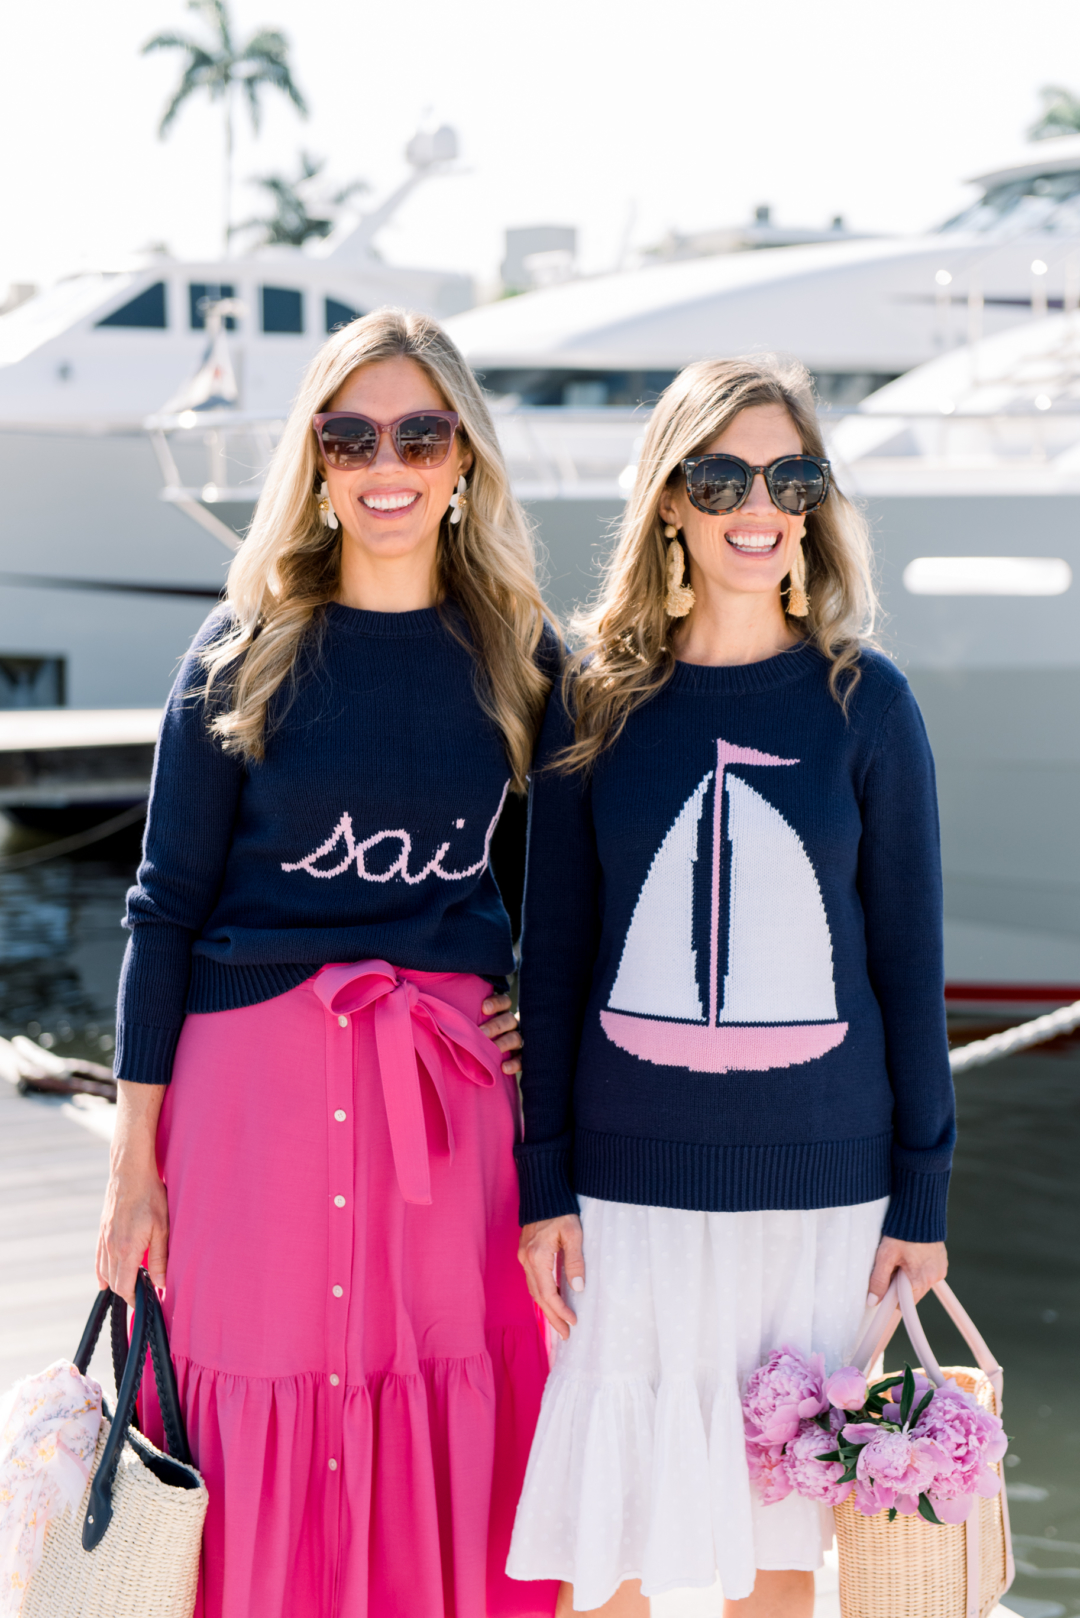 Fashion: New Sail to Sable with Palm Beach Lately